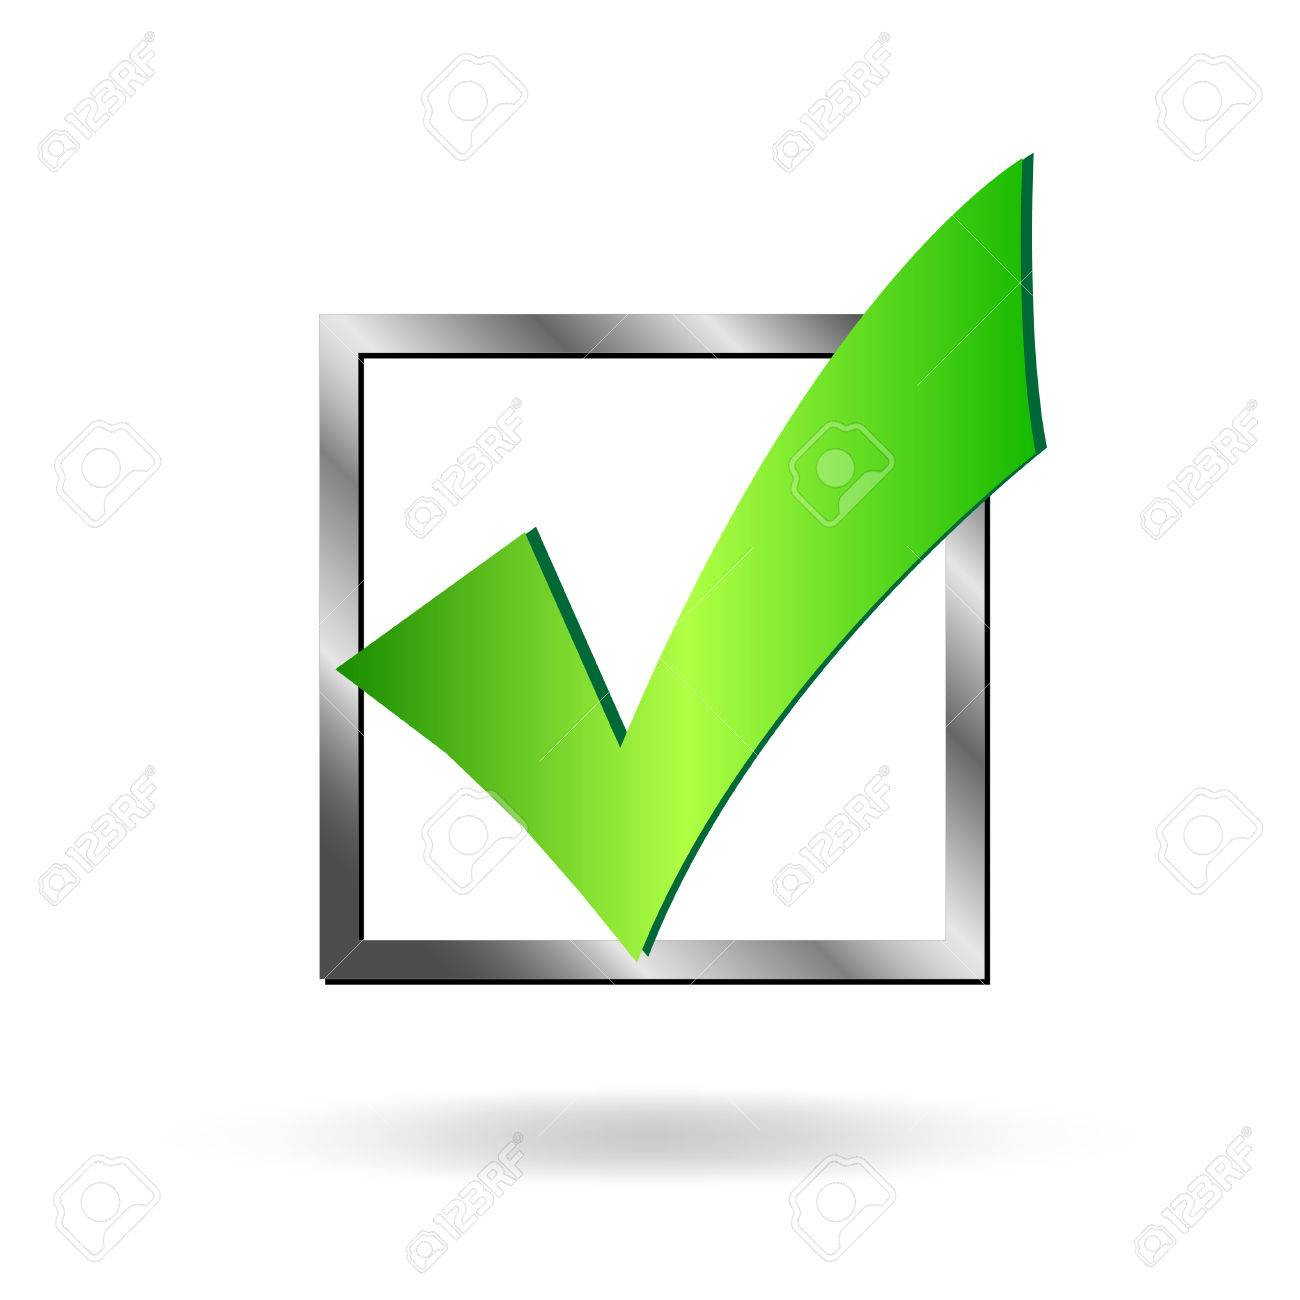 Image of a box being checked by a green check mark isolated on a white background. - 25831117